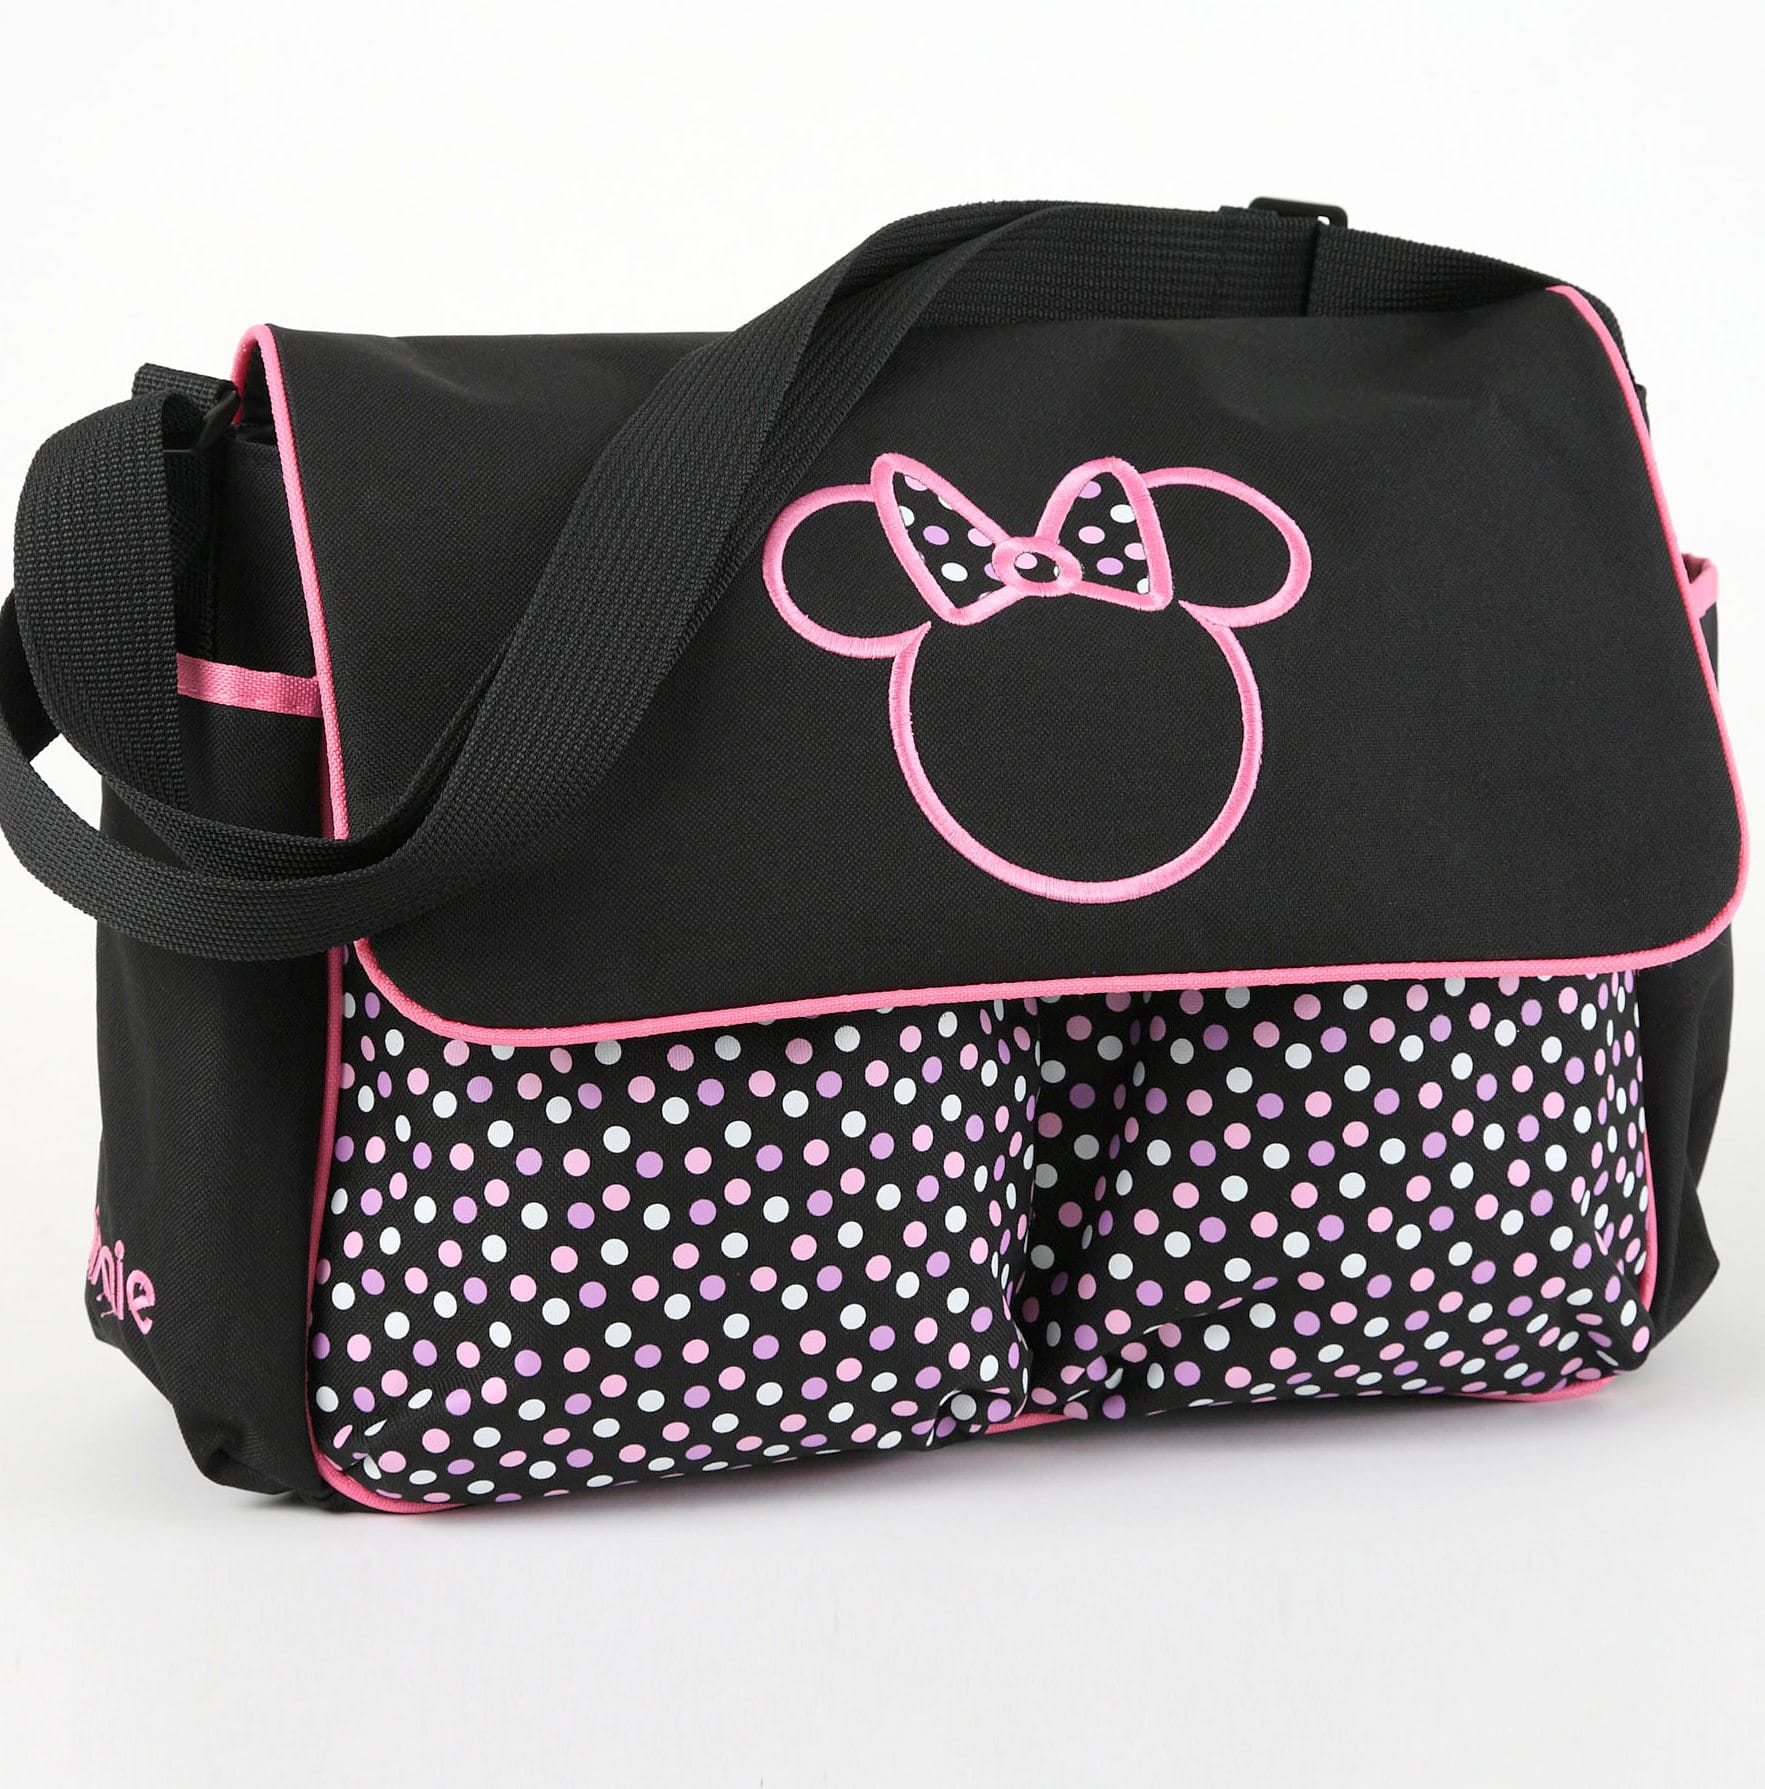 Free Minnie Mouse Bag Picture